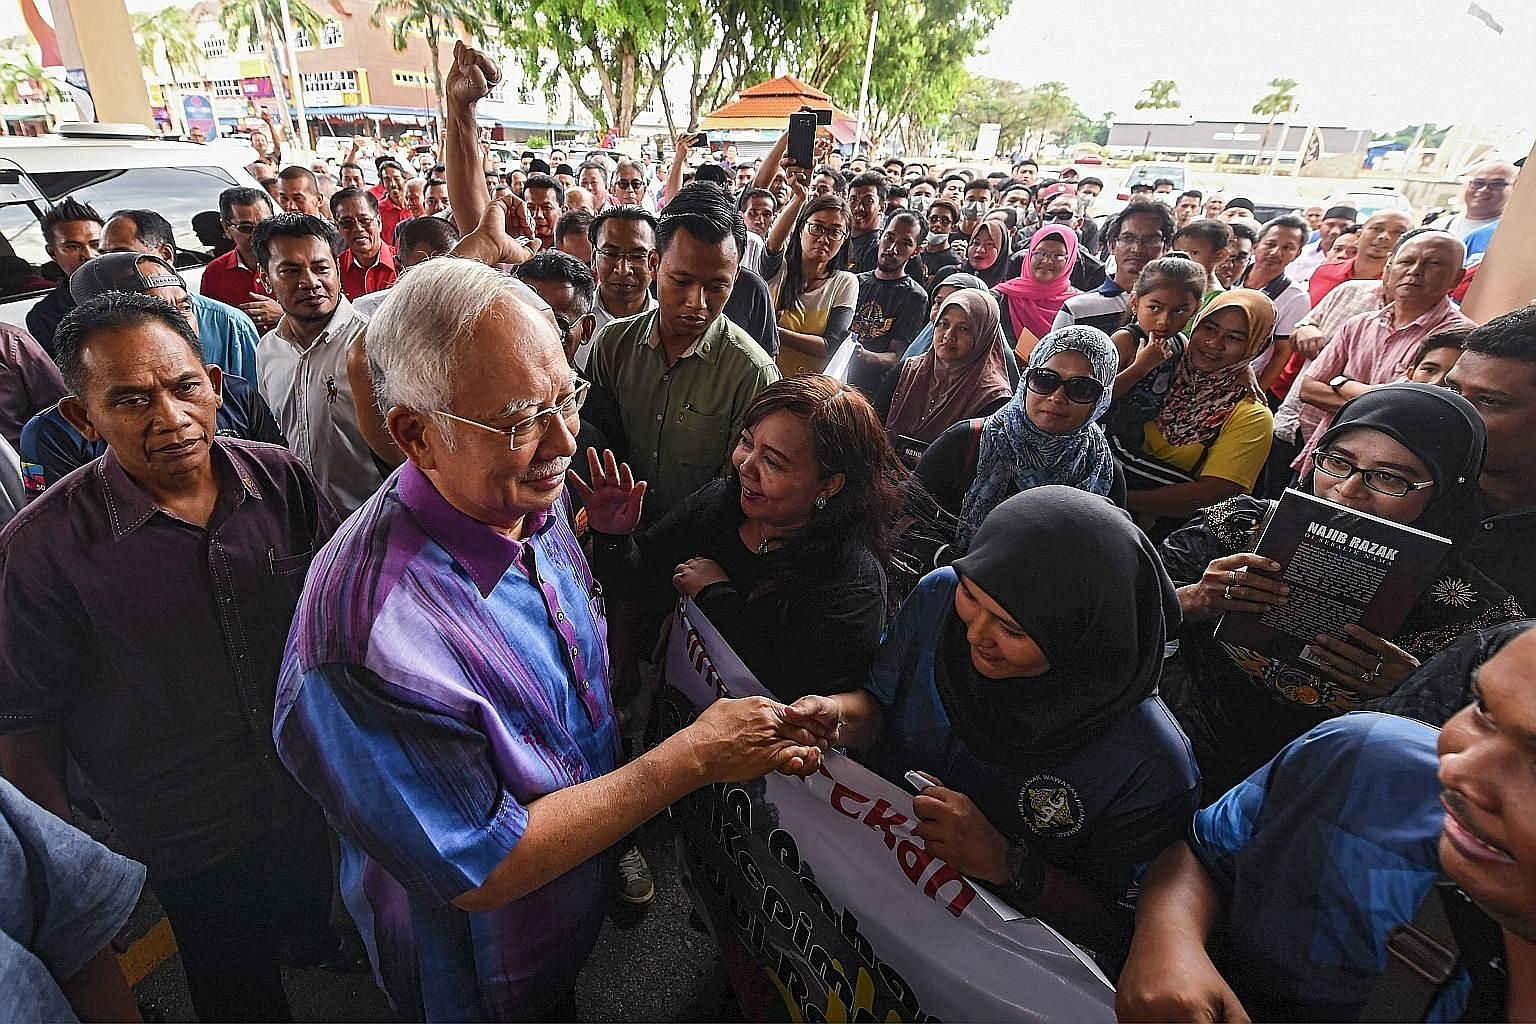 Datuk Seri Najib Razak meeting supporters at an event in Pekan, Pahang, on Sunday. The former Malaysian premier, who has been summoned to the Malaysian Anti-Corruption Commission today, is expected to be questioned about fund transfers amounting to m